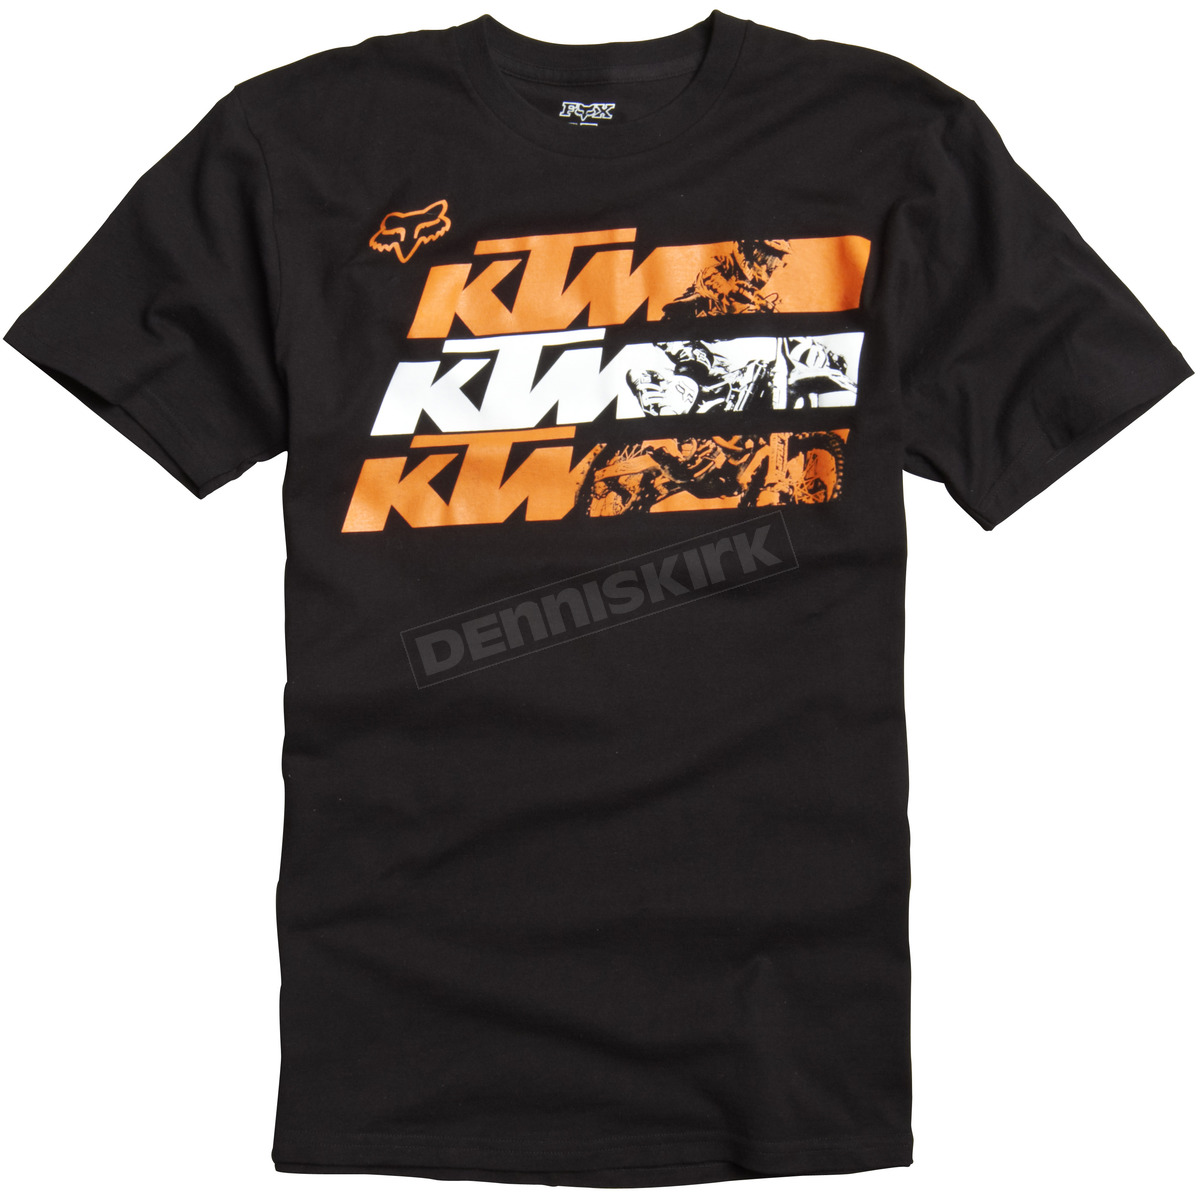 fox black ktm shadow t shirt 07378 001 2x atv dirt bike dennis kirk inc. Black Bedroom Furniture Sets. Home Design Ideas